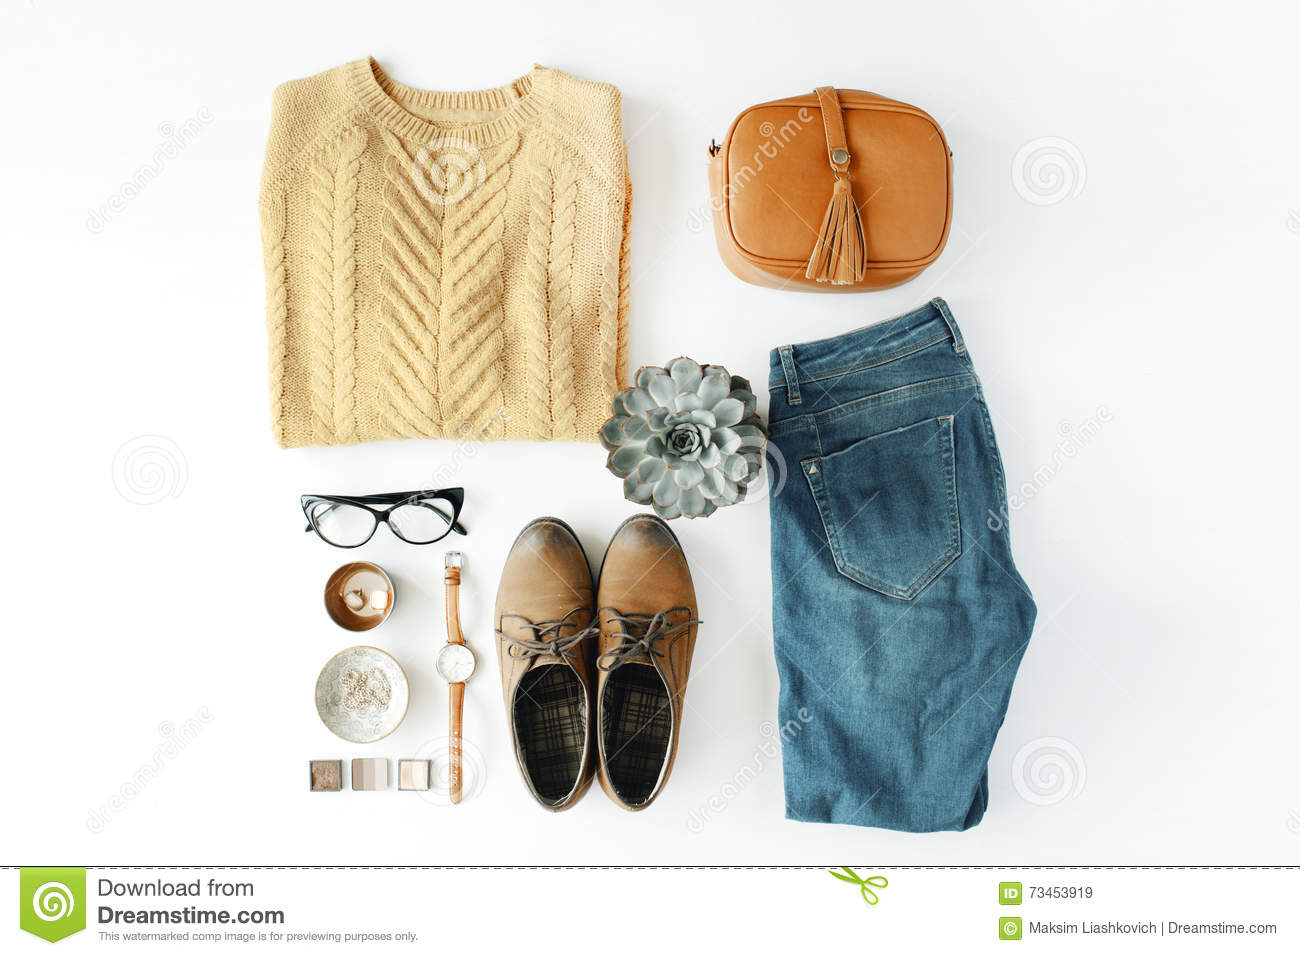 d30871066cad Flat lay feminine clothes and accessories collage with brown cardigan, jeans,  glasses, watch